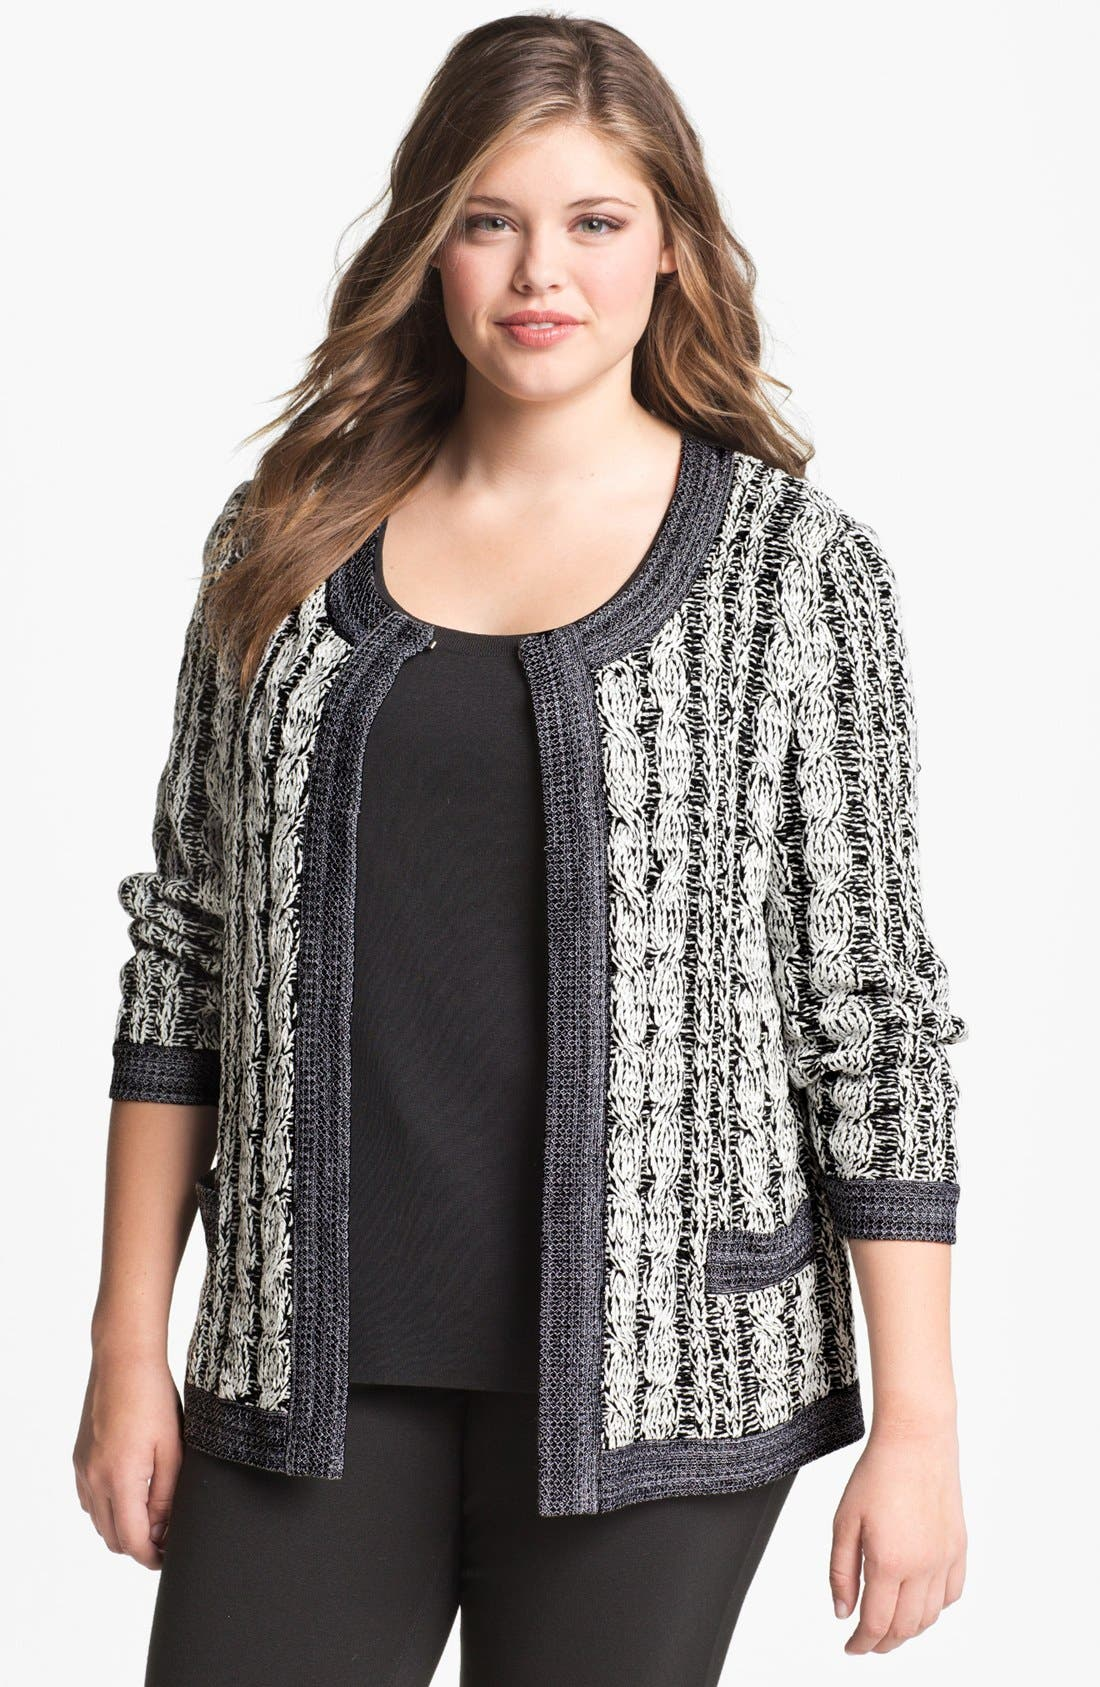 Main Image - Exclusively Misook 'Rena' Sweater Jacket (Plus Size)